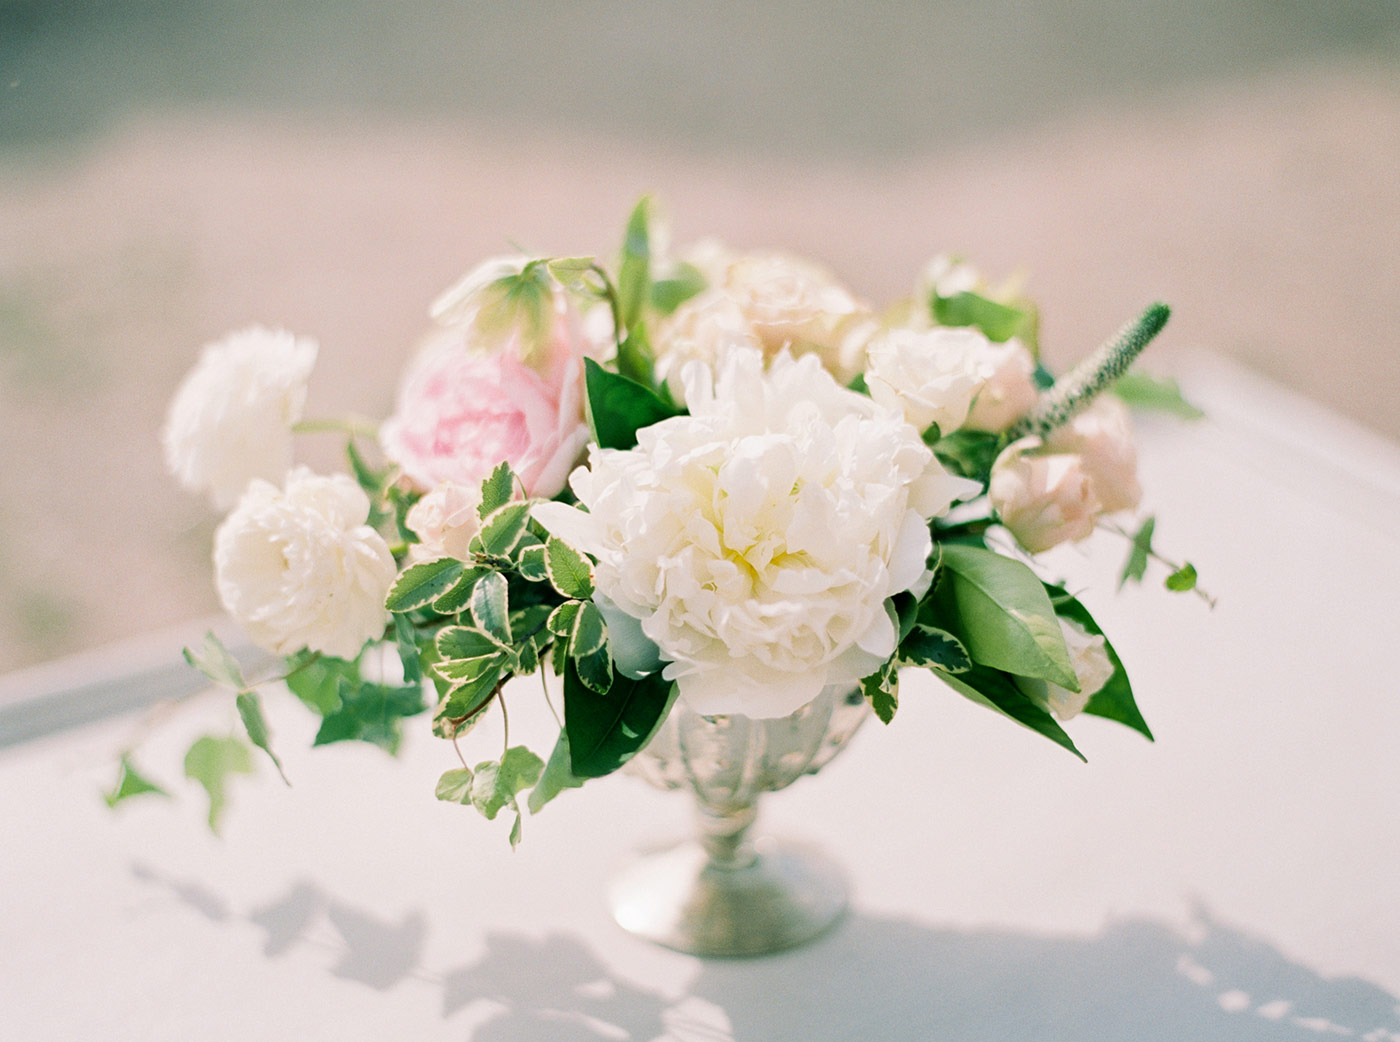 White, Pink and Green Floral Arrangement by Noonan's Wine Country Designs